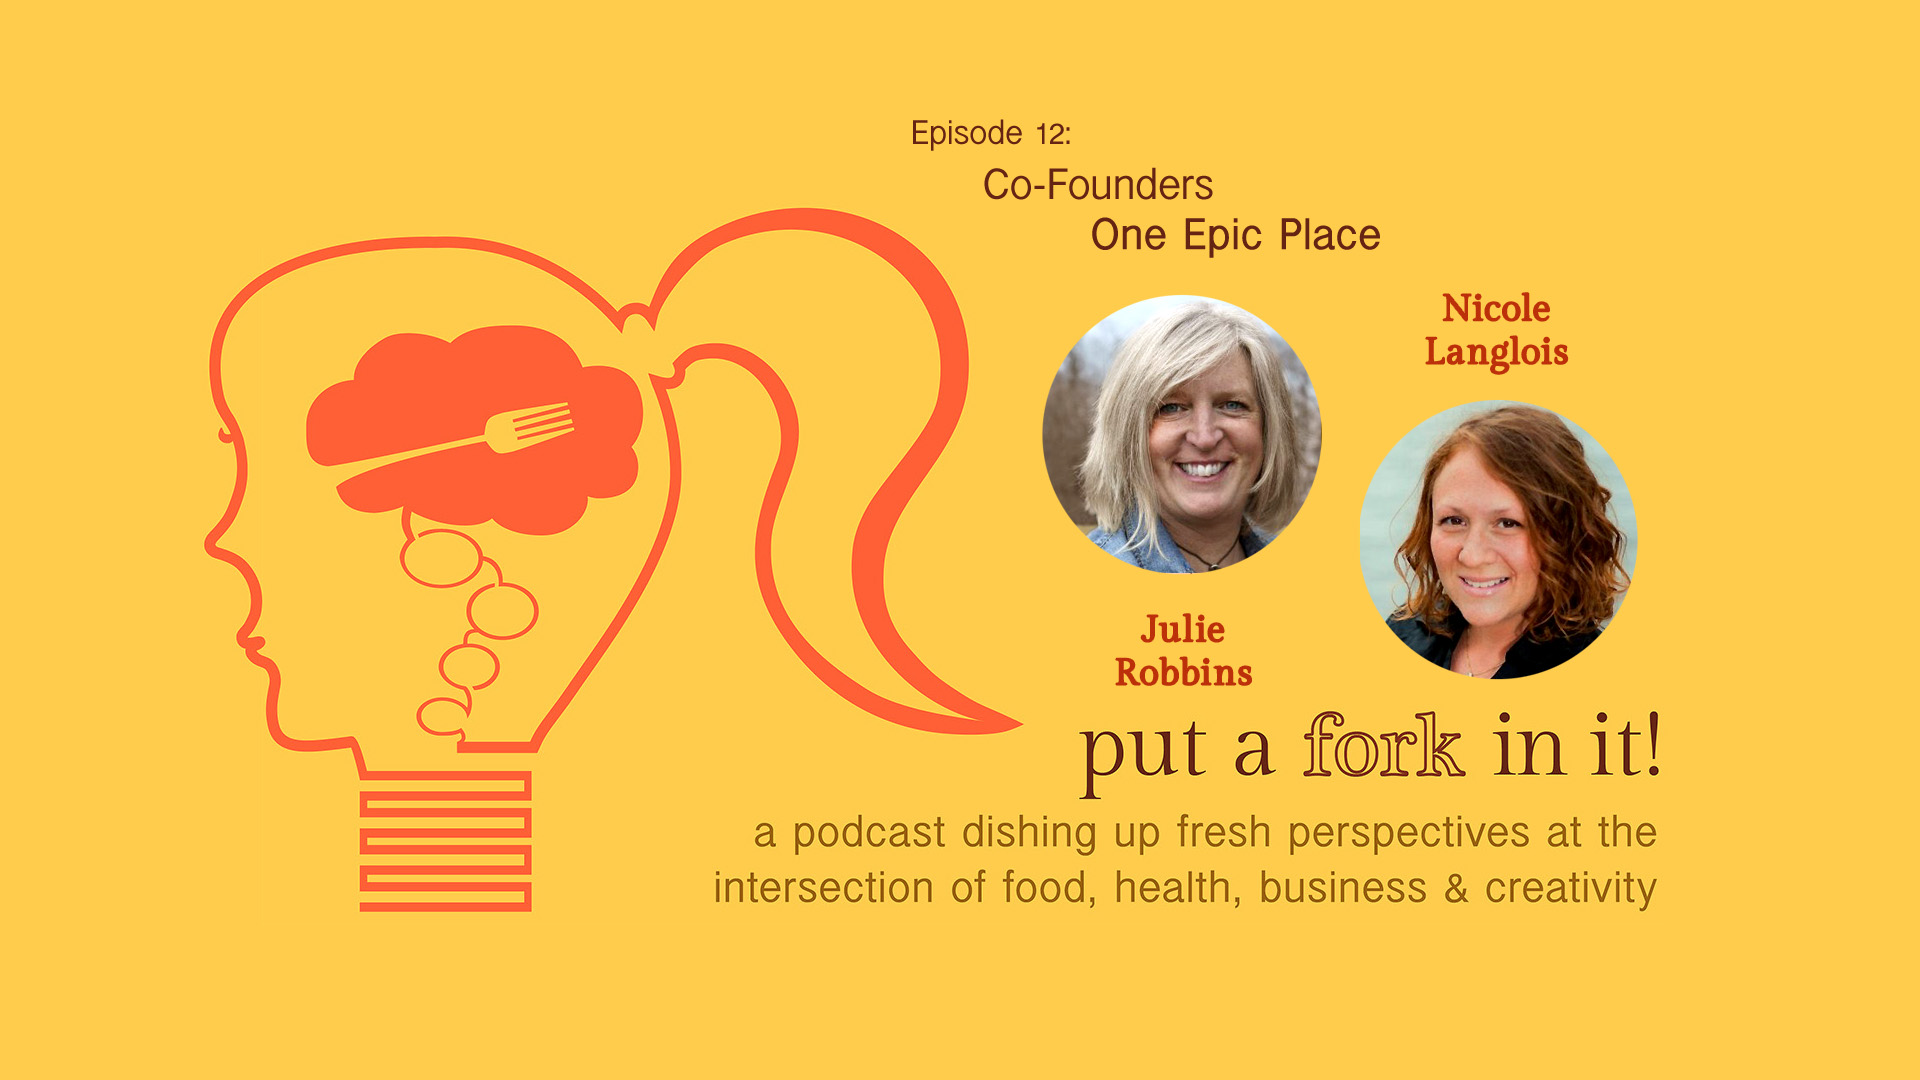 PAFII Episode 12: Julie Robbins & Nicole Langlois, Co-Founders, One Epic Place